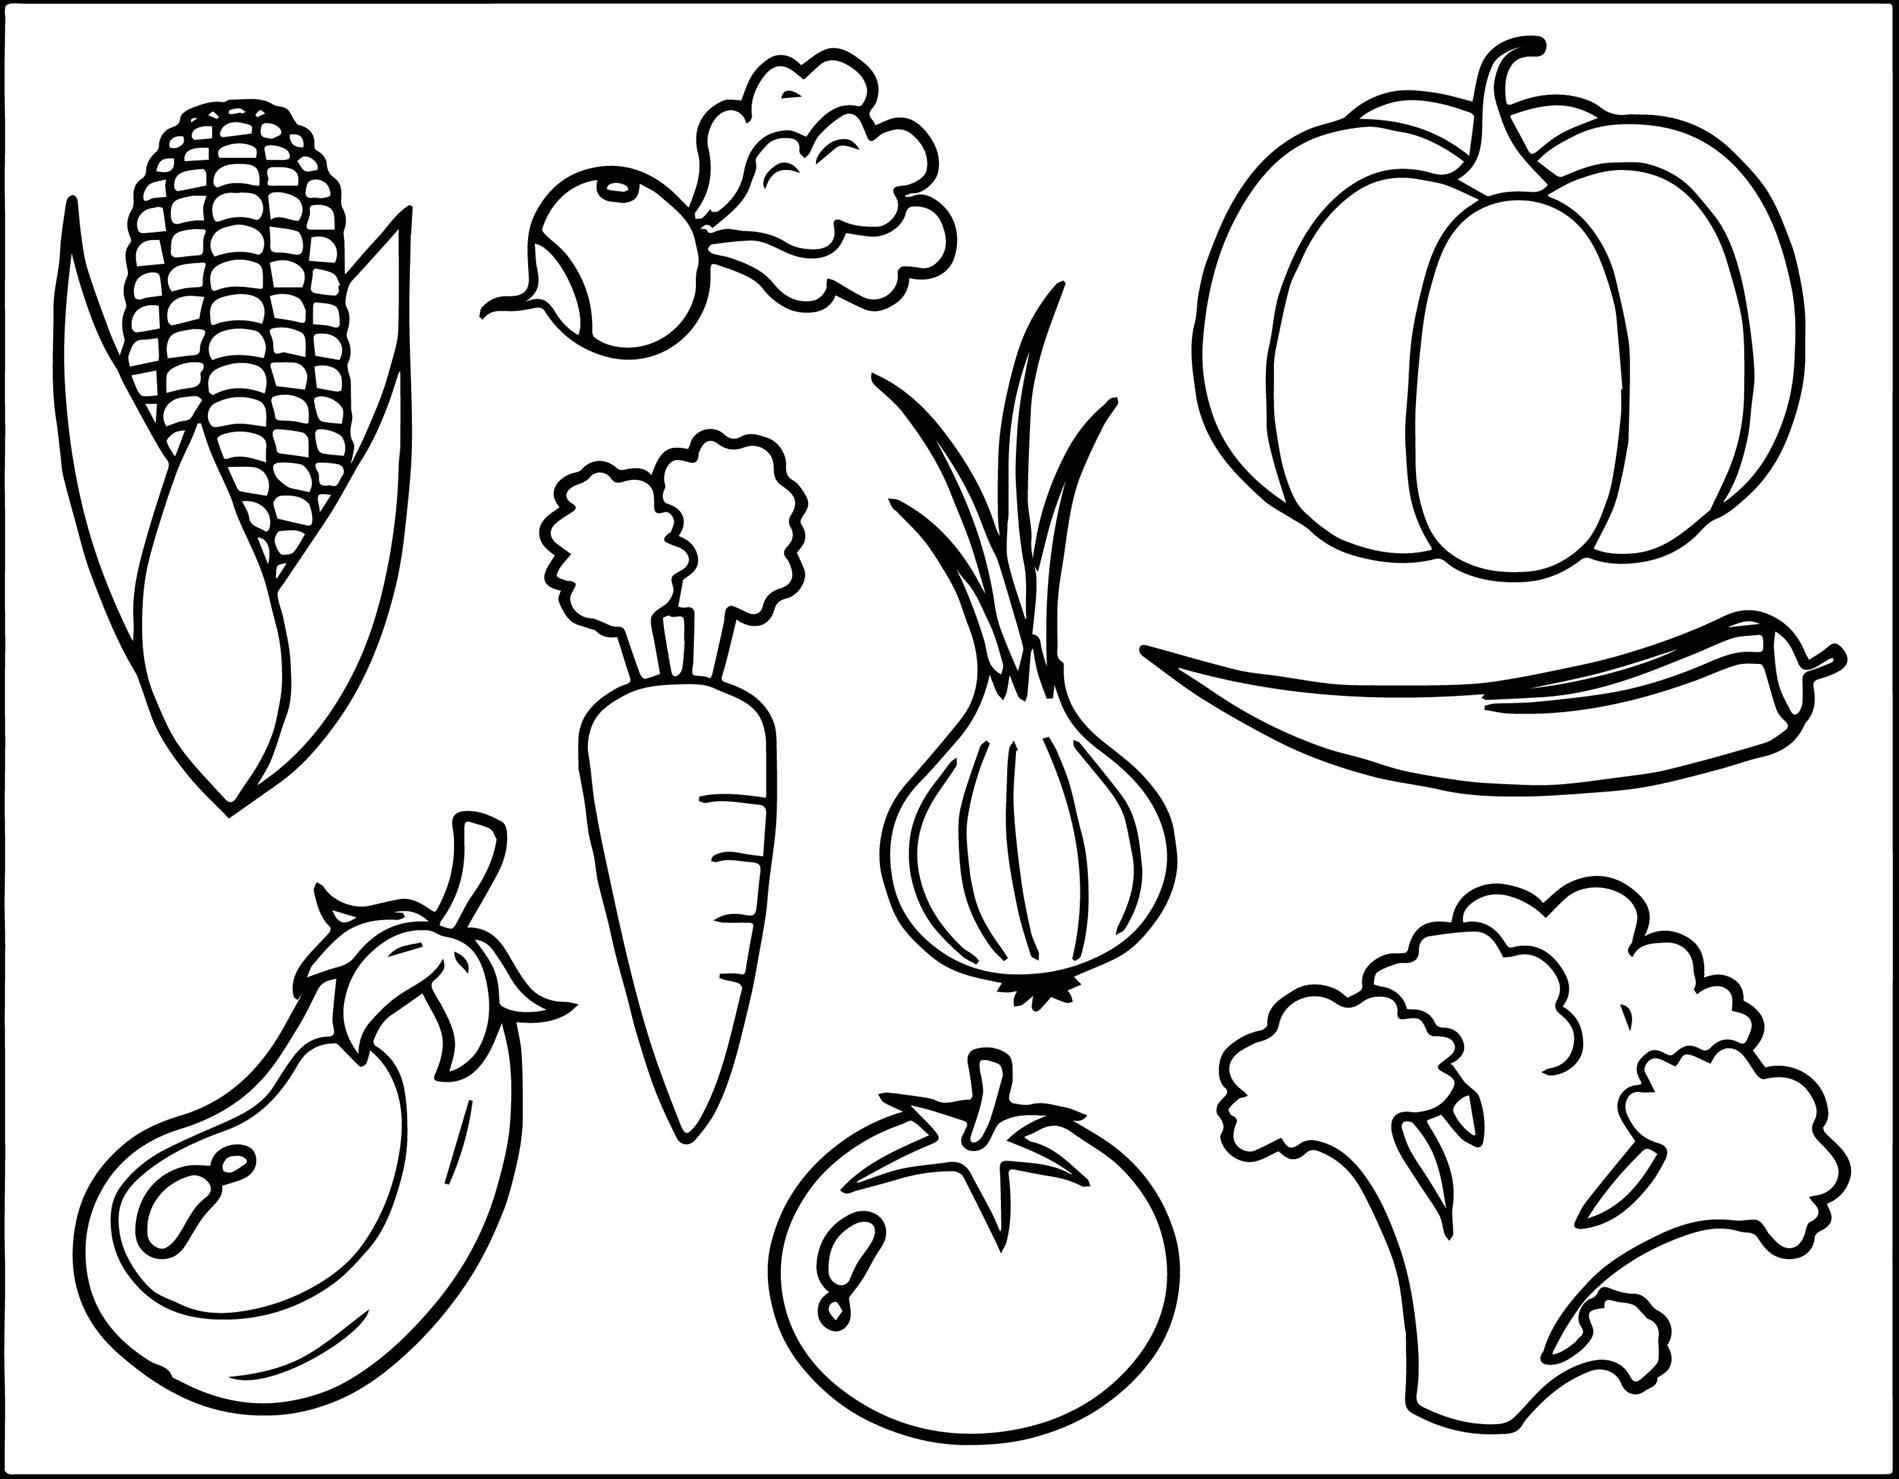 Healthy Food Coloring Pages For Preschool Food Coloring Pages Fruit Coloring Pages Free Kids Coloring Pages